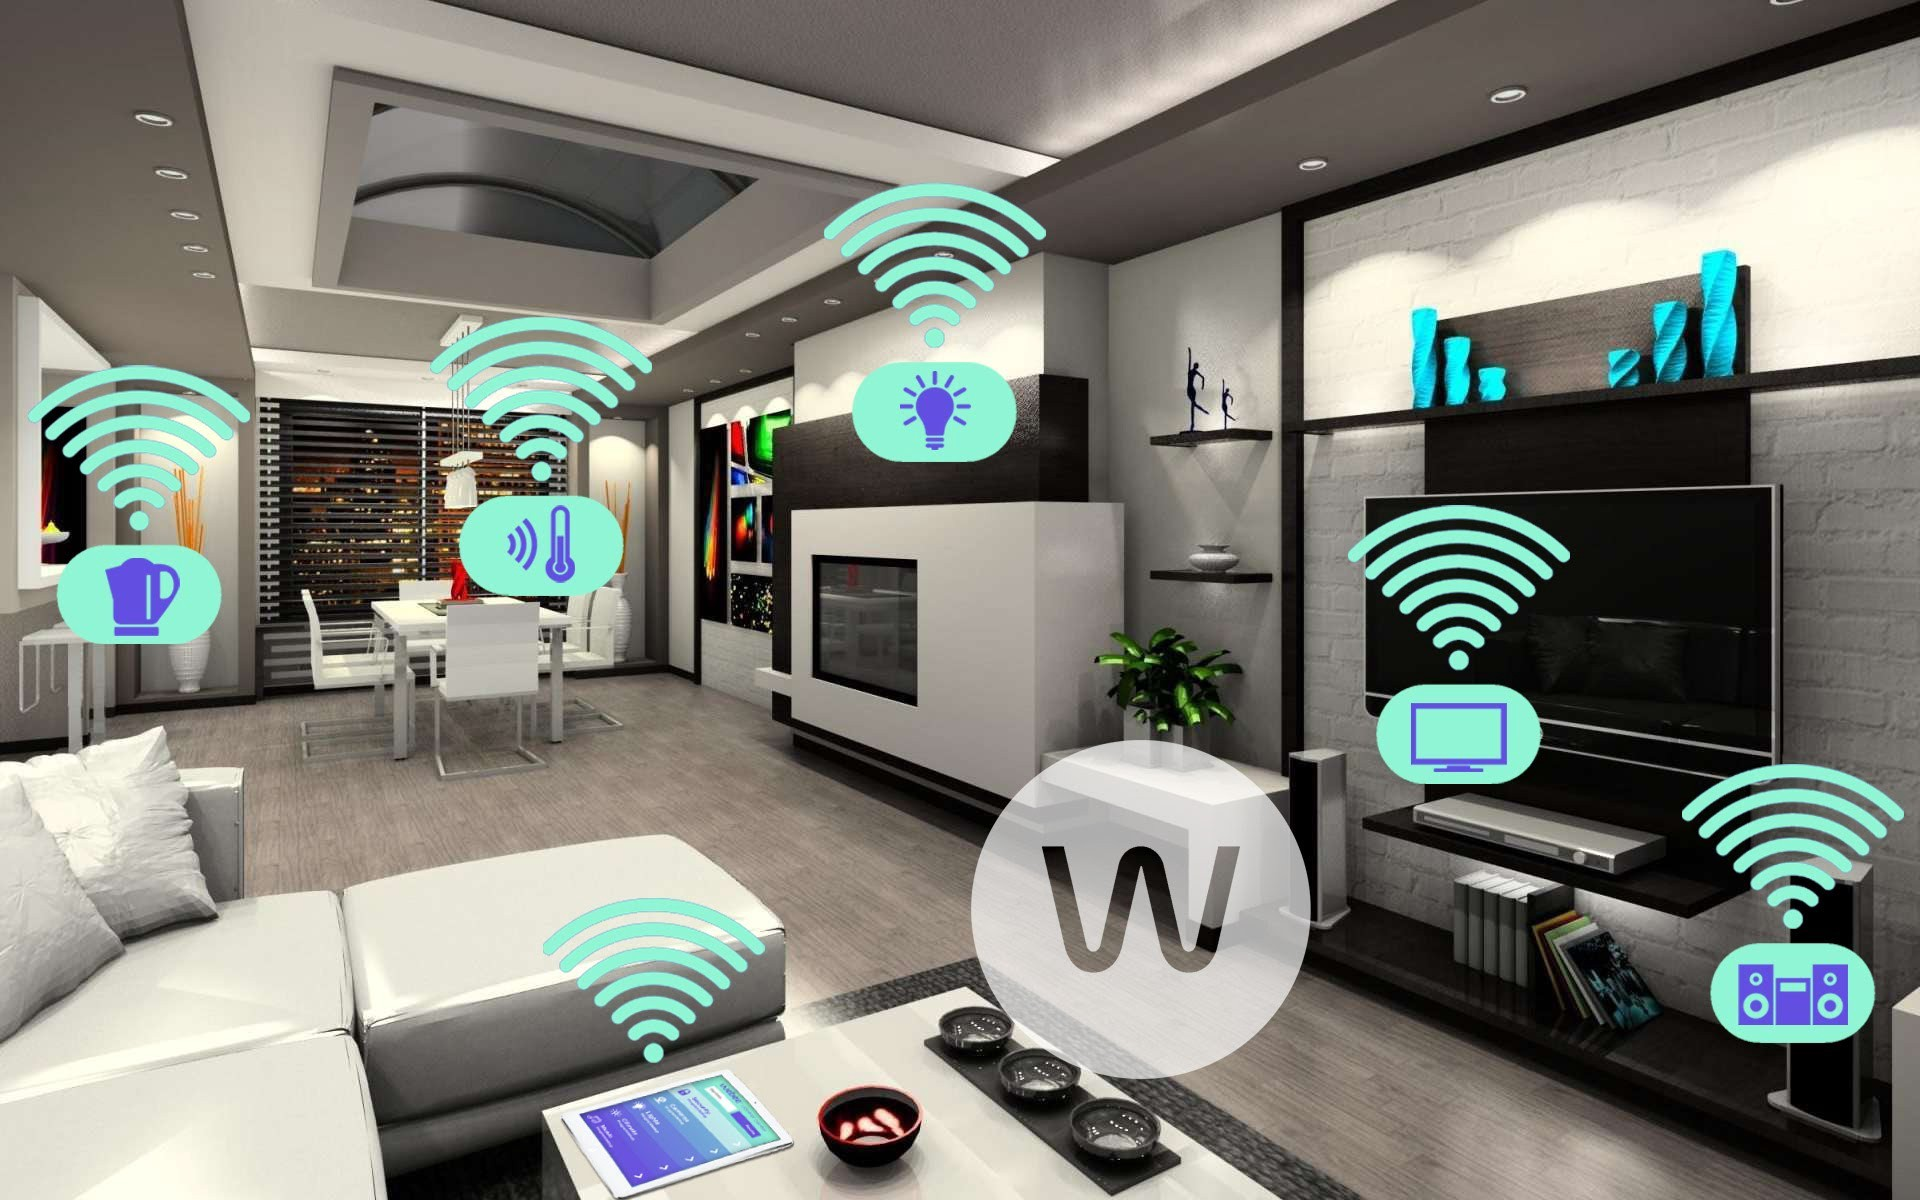 According To A Study By IHS Technologyu0027s Home Appliance Intelligence  Service, The Global Smart Connected White Goods Market Will Reach Over 223  Million ...